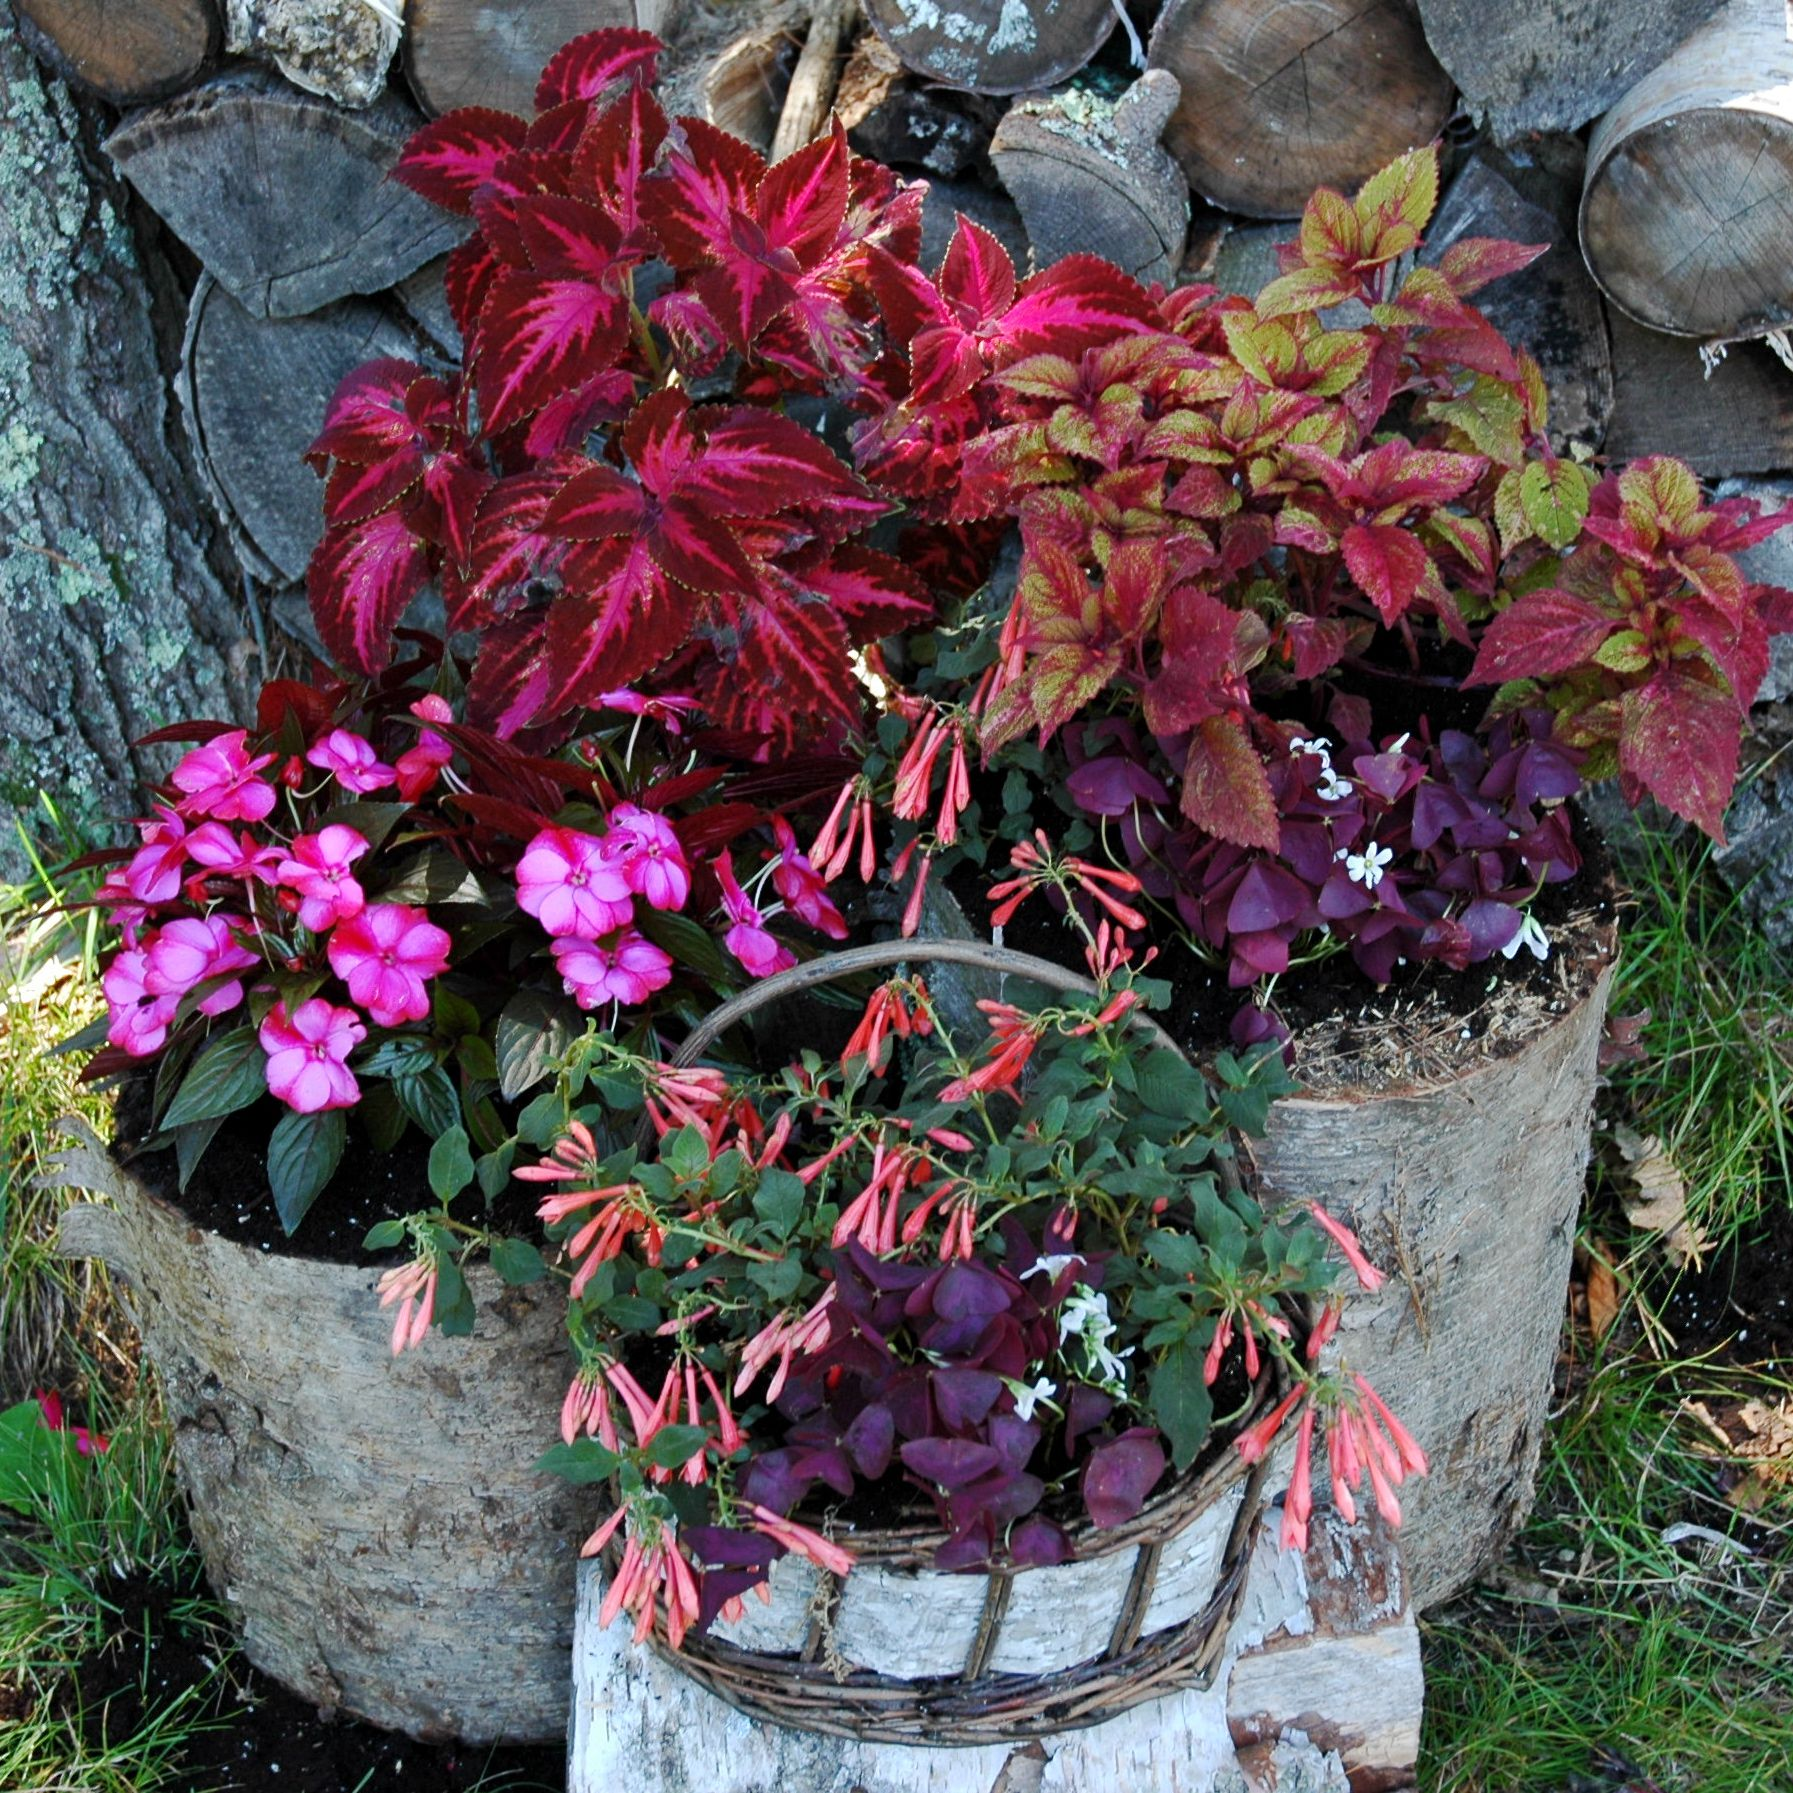 Log container garden filled with plants